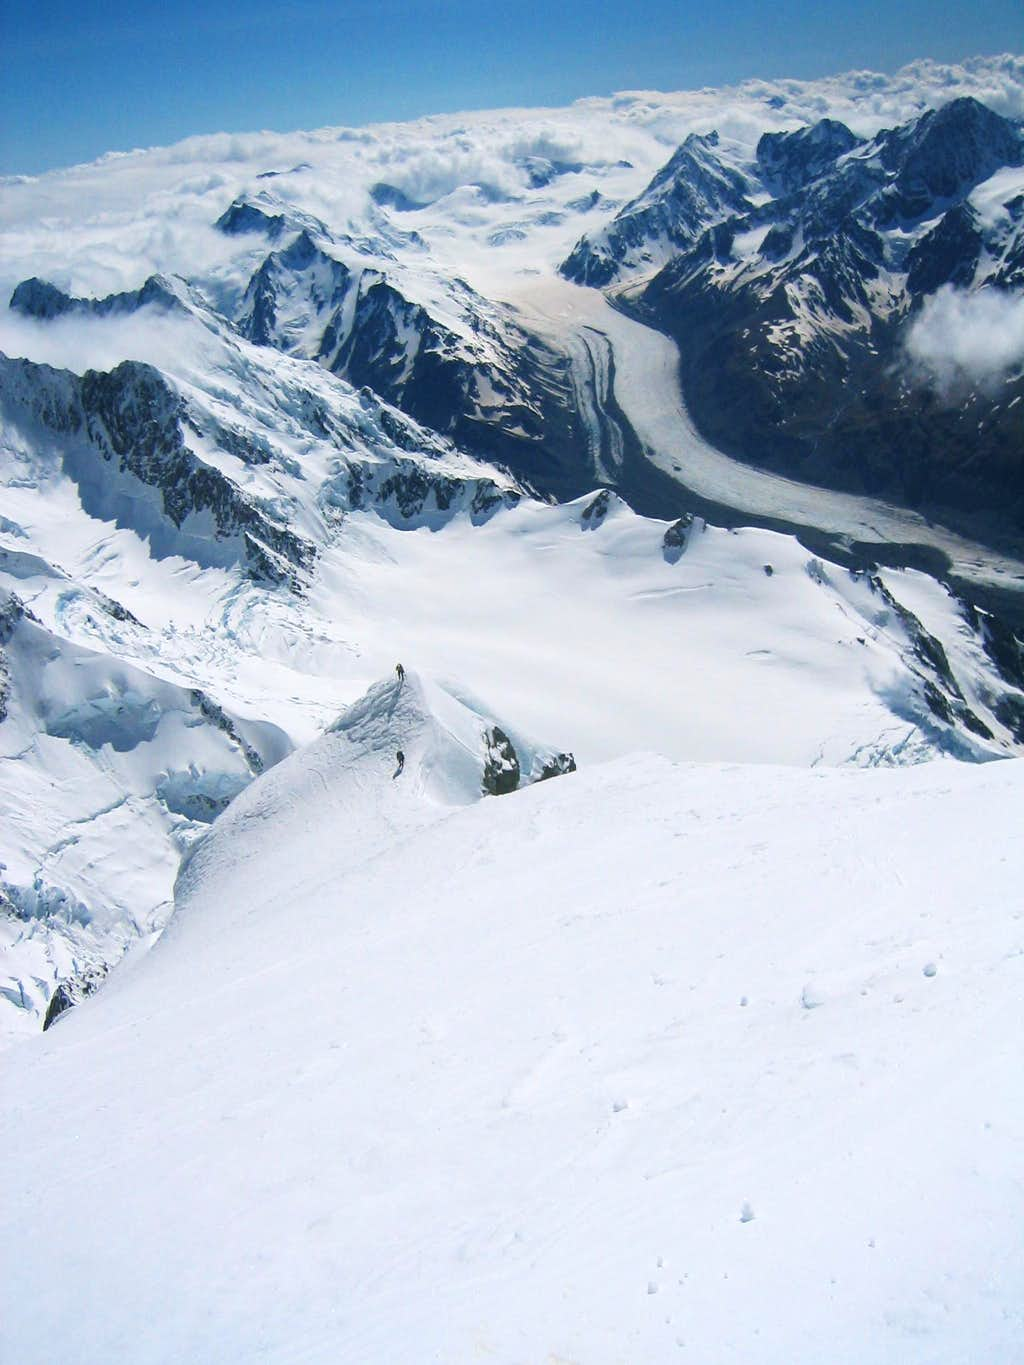 Two climbers below the summit of Mt. Cook